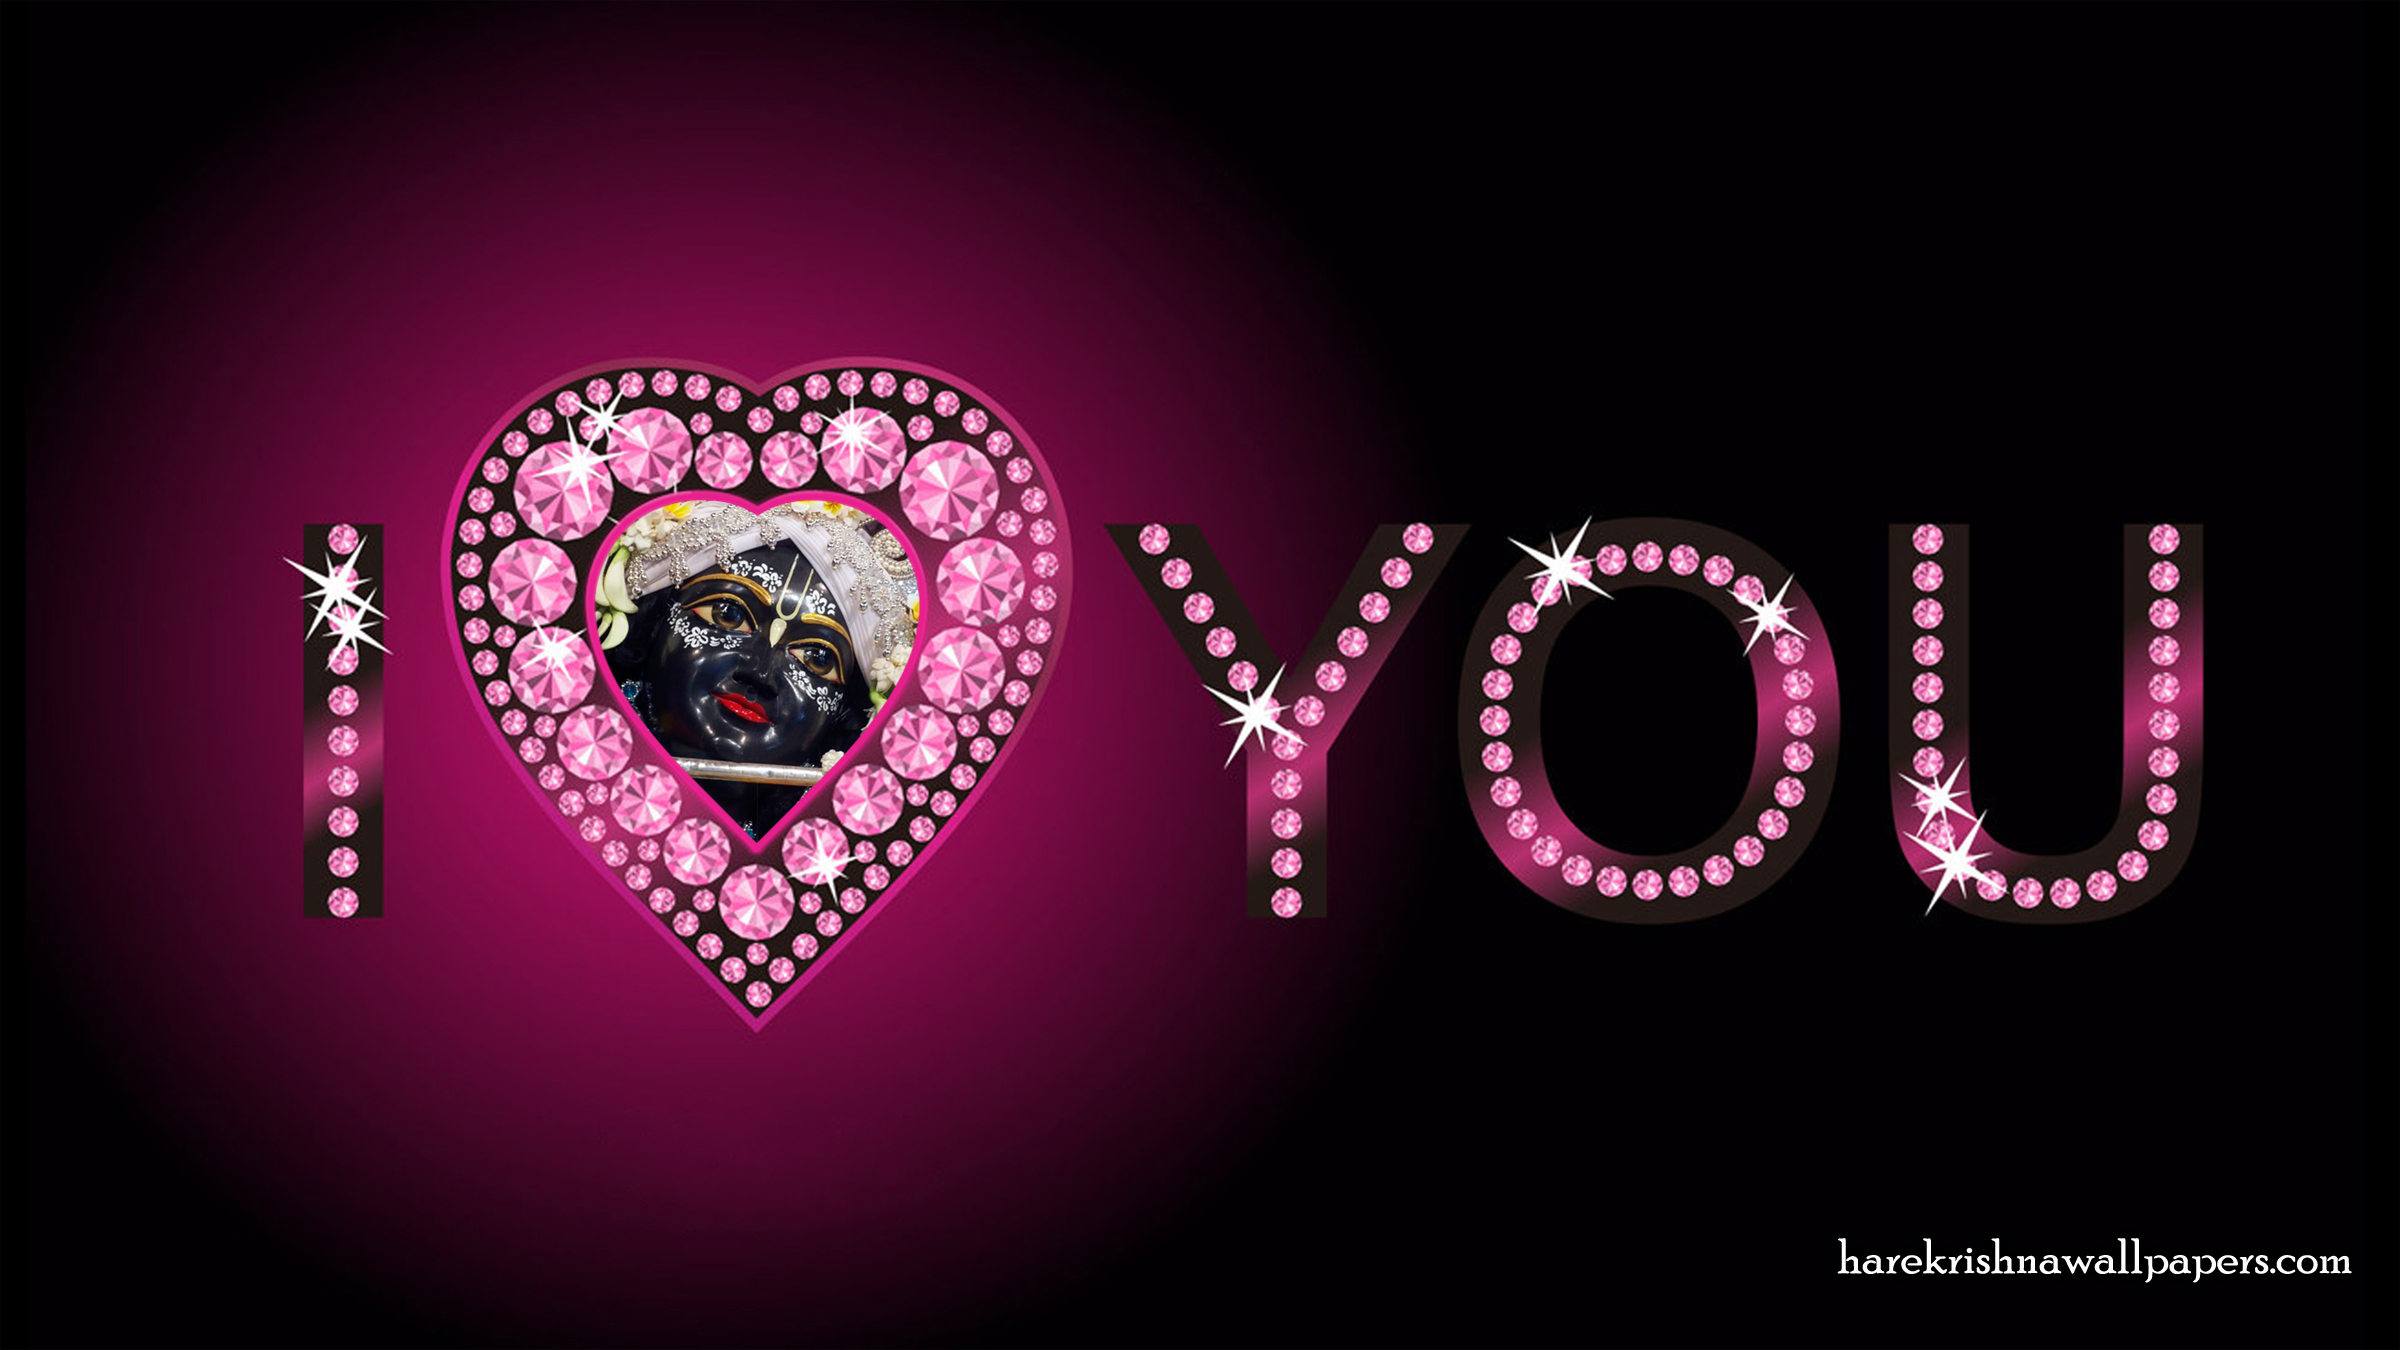 I Love You Madhava Wallpaper (005) Size 2400x1350 Download